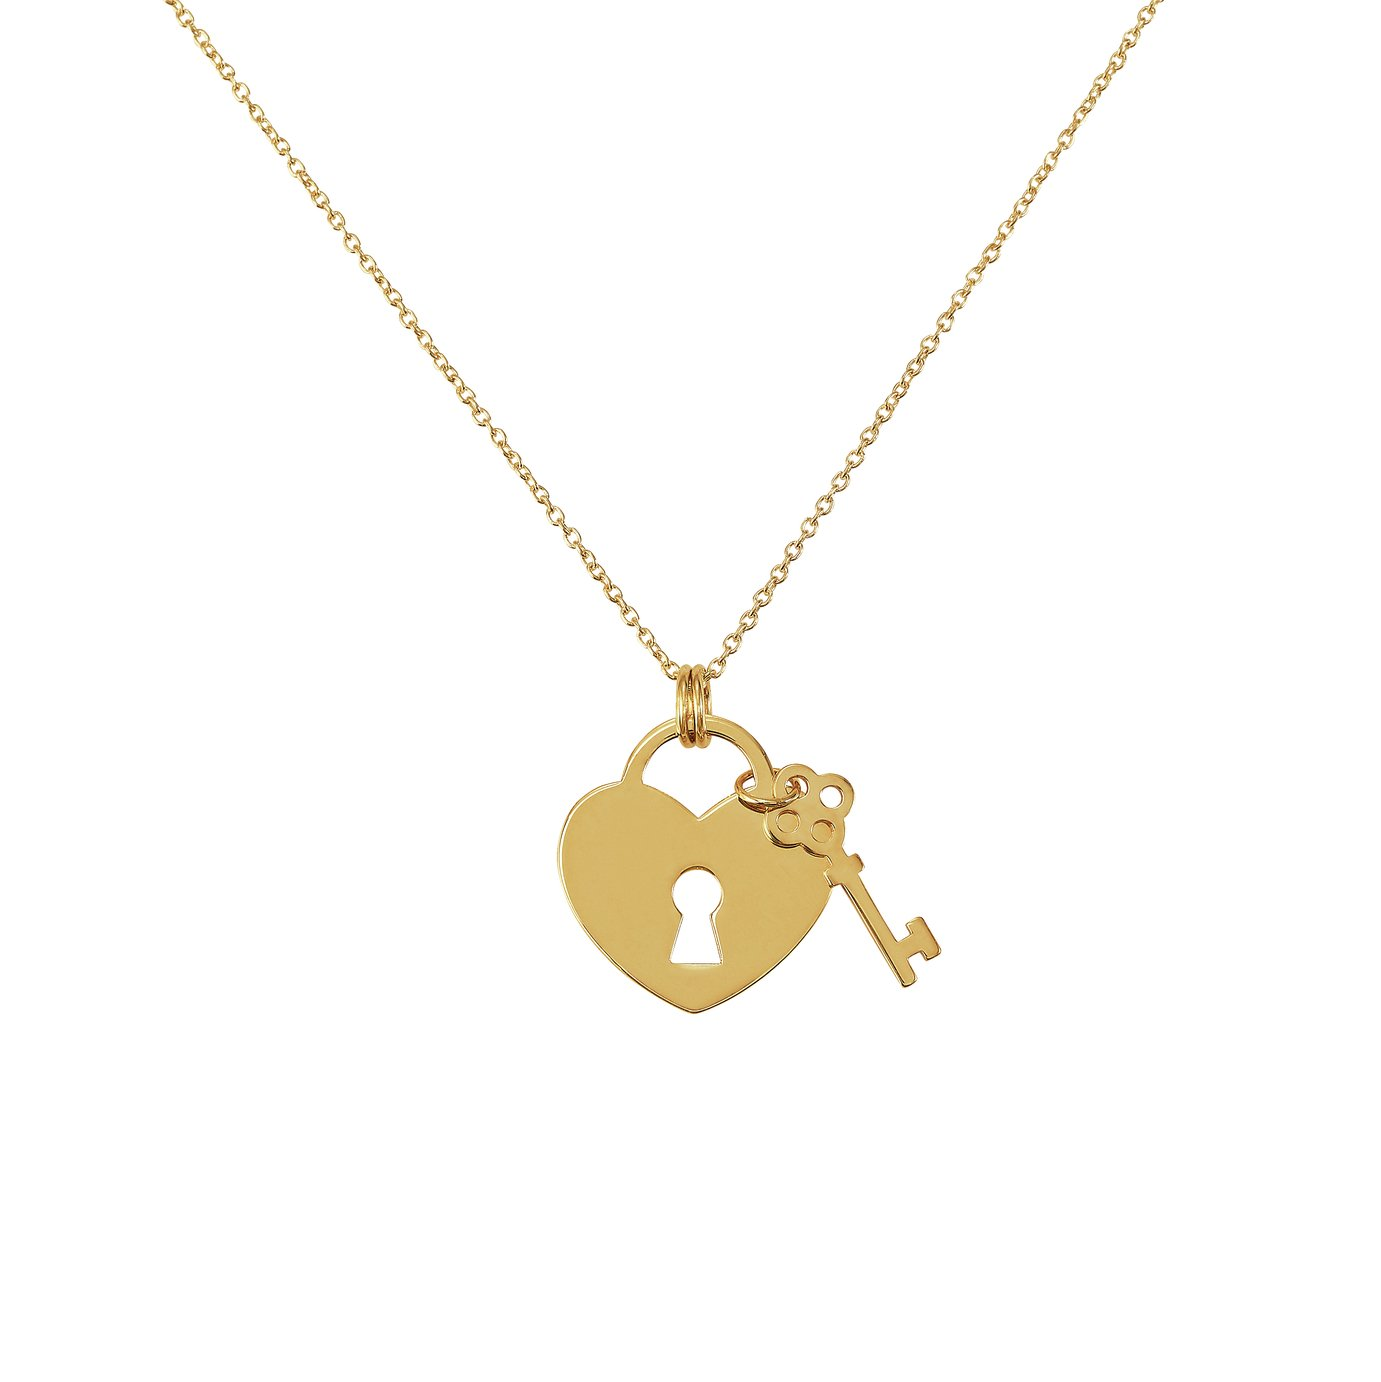 Revere 9ct Gold Heart Padlock with Key Pendant Necklace